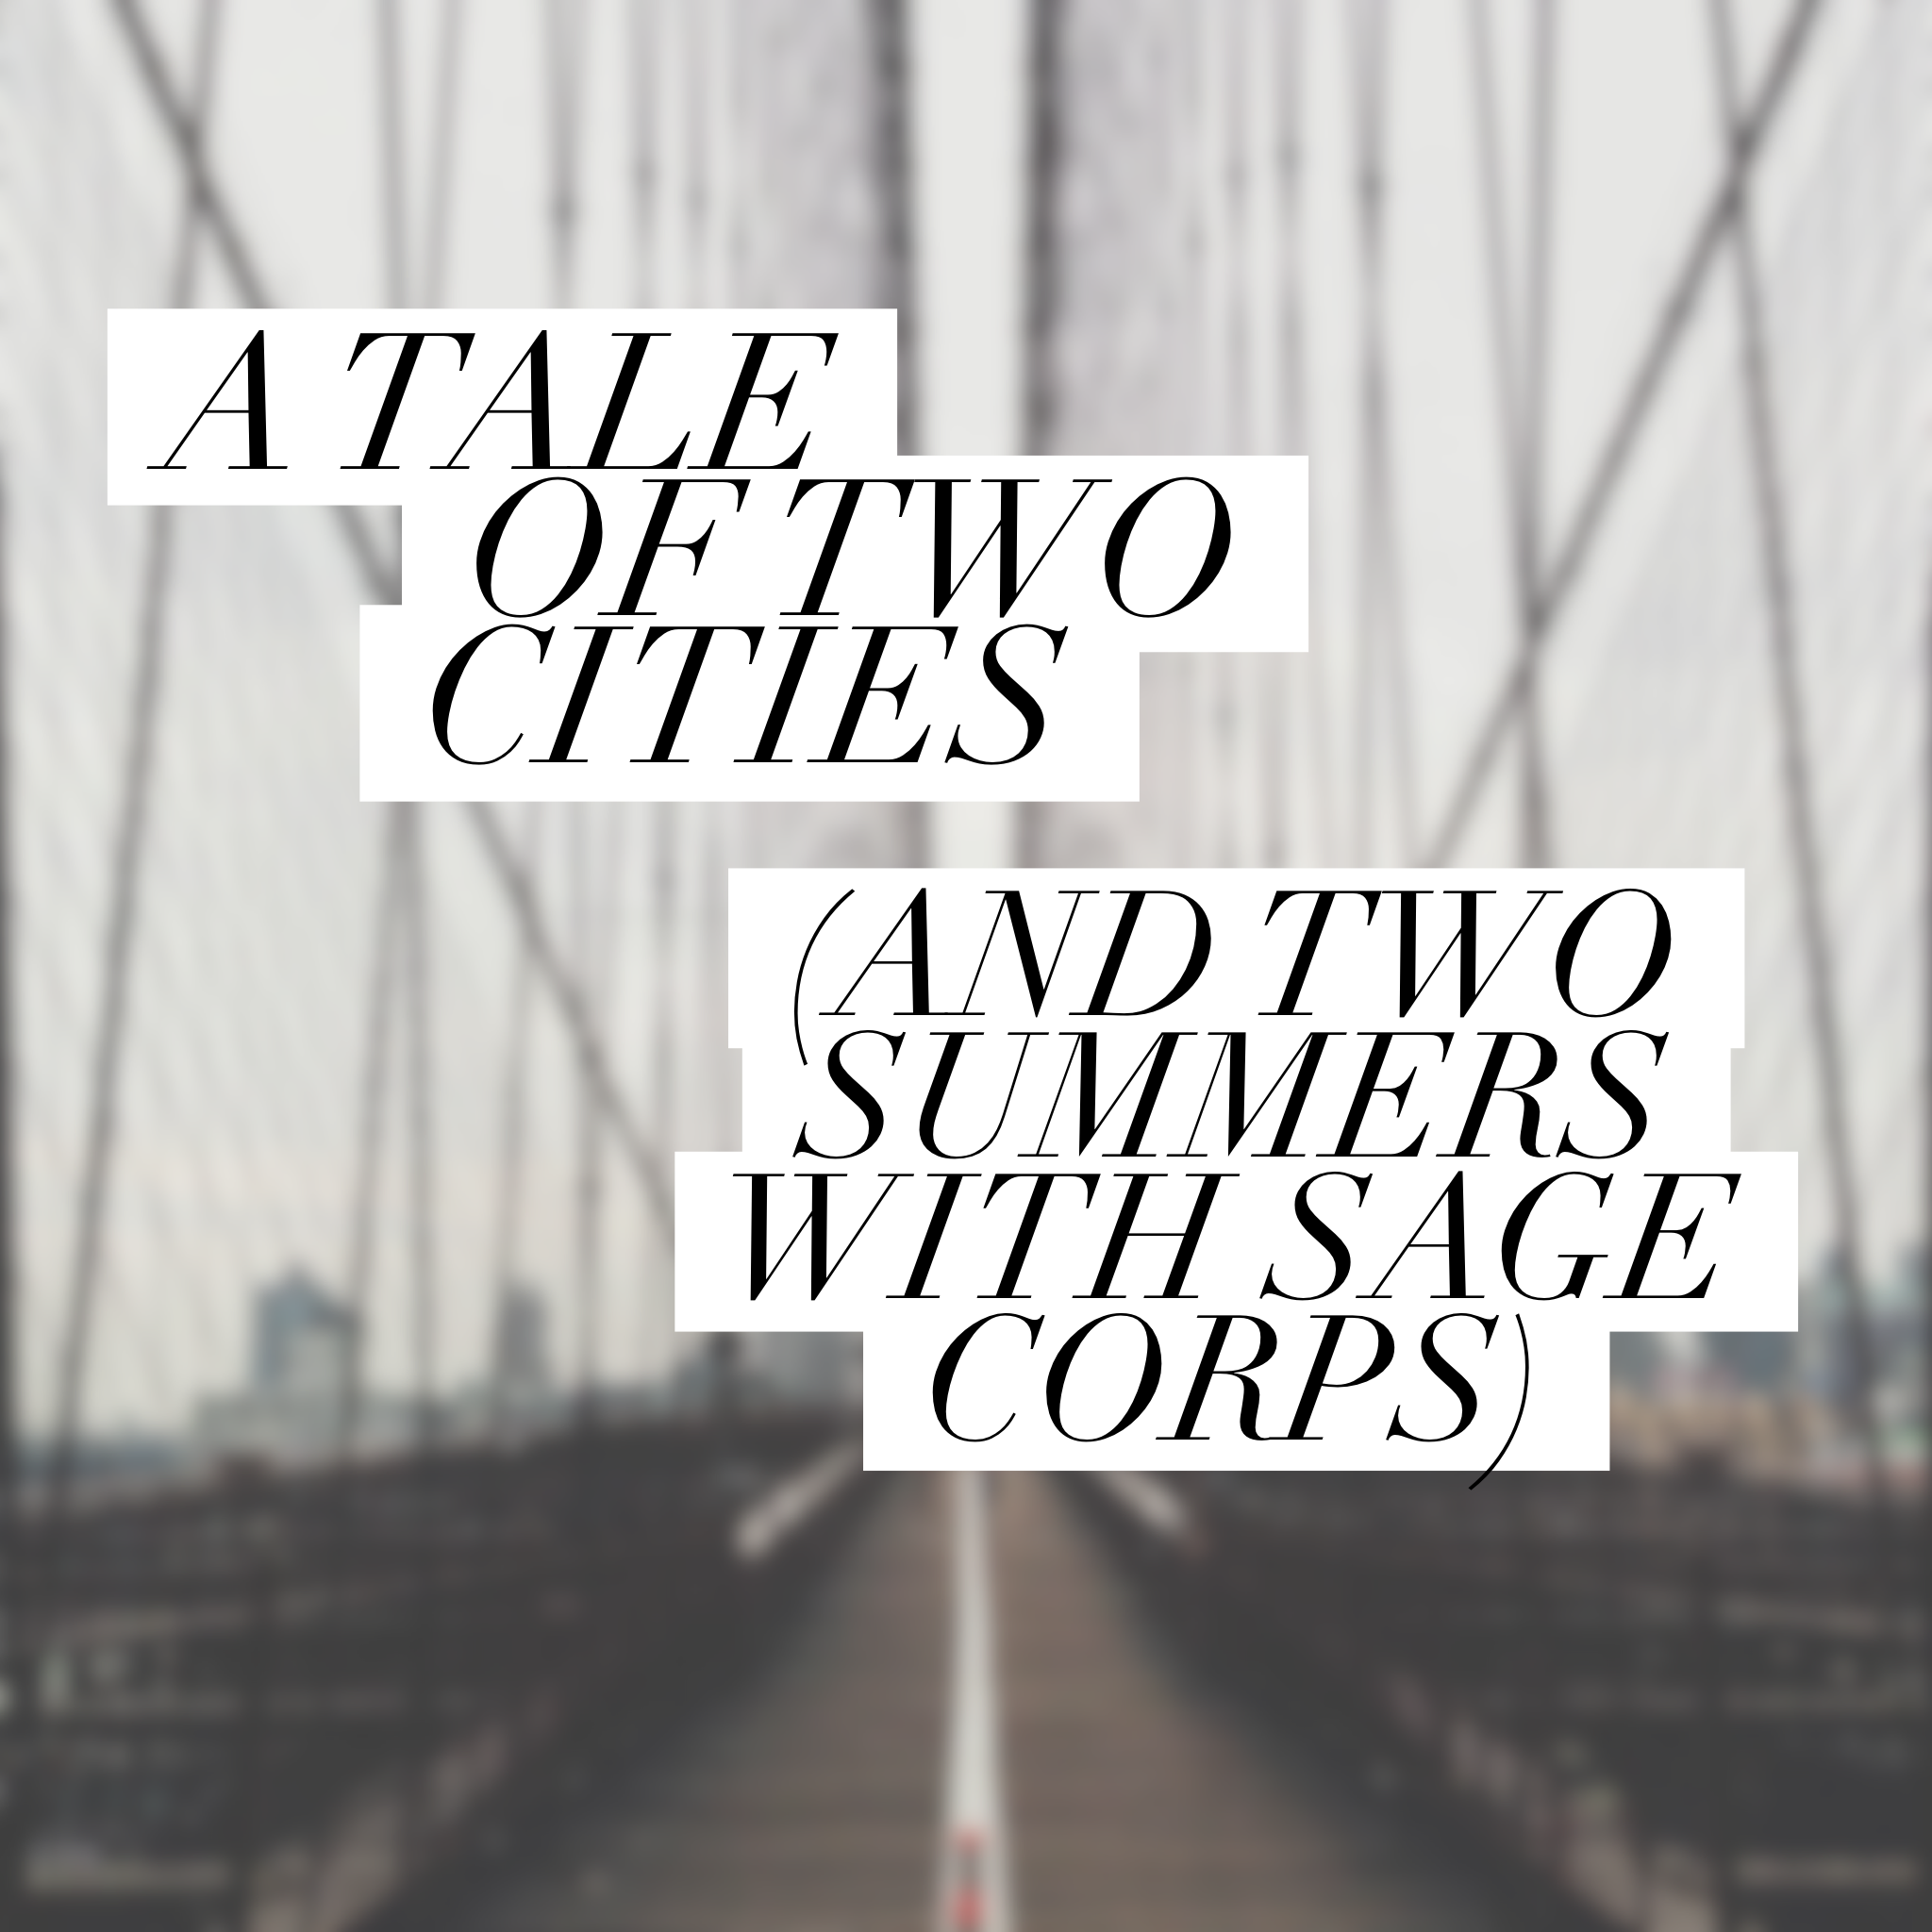 Sage Corps Tale of Two Cities